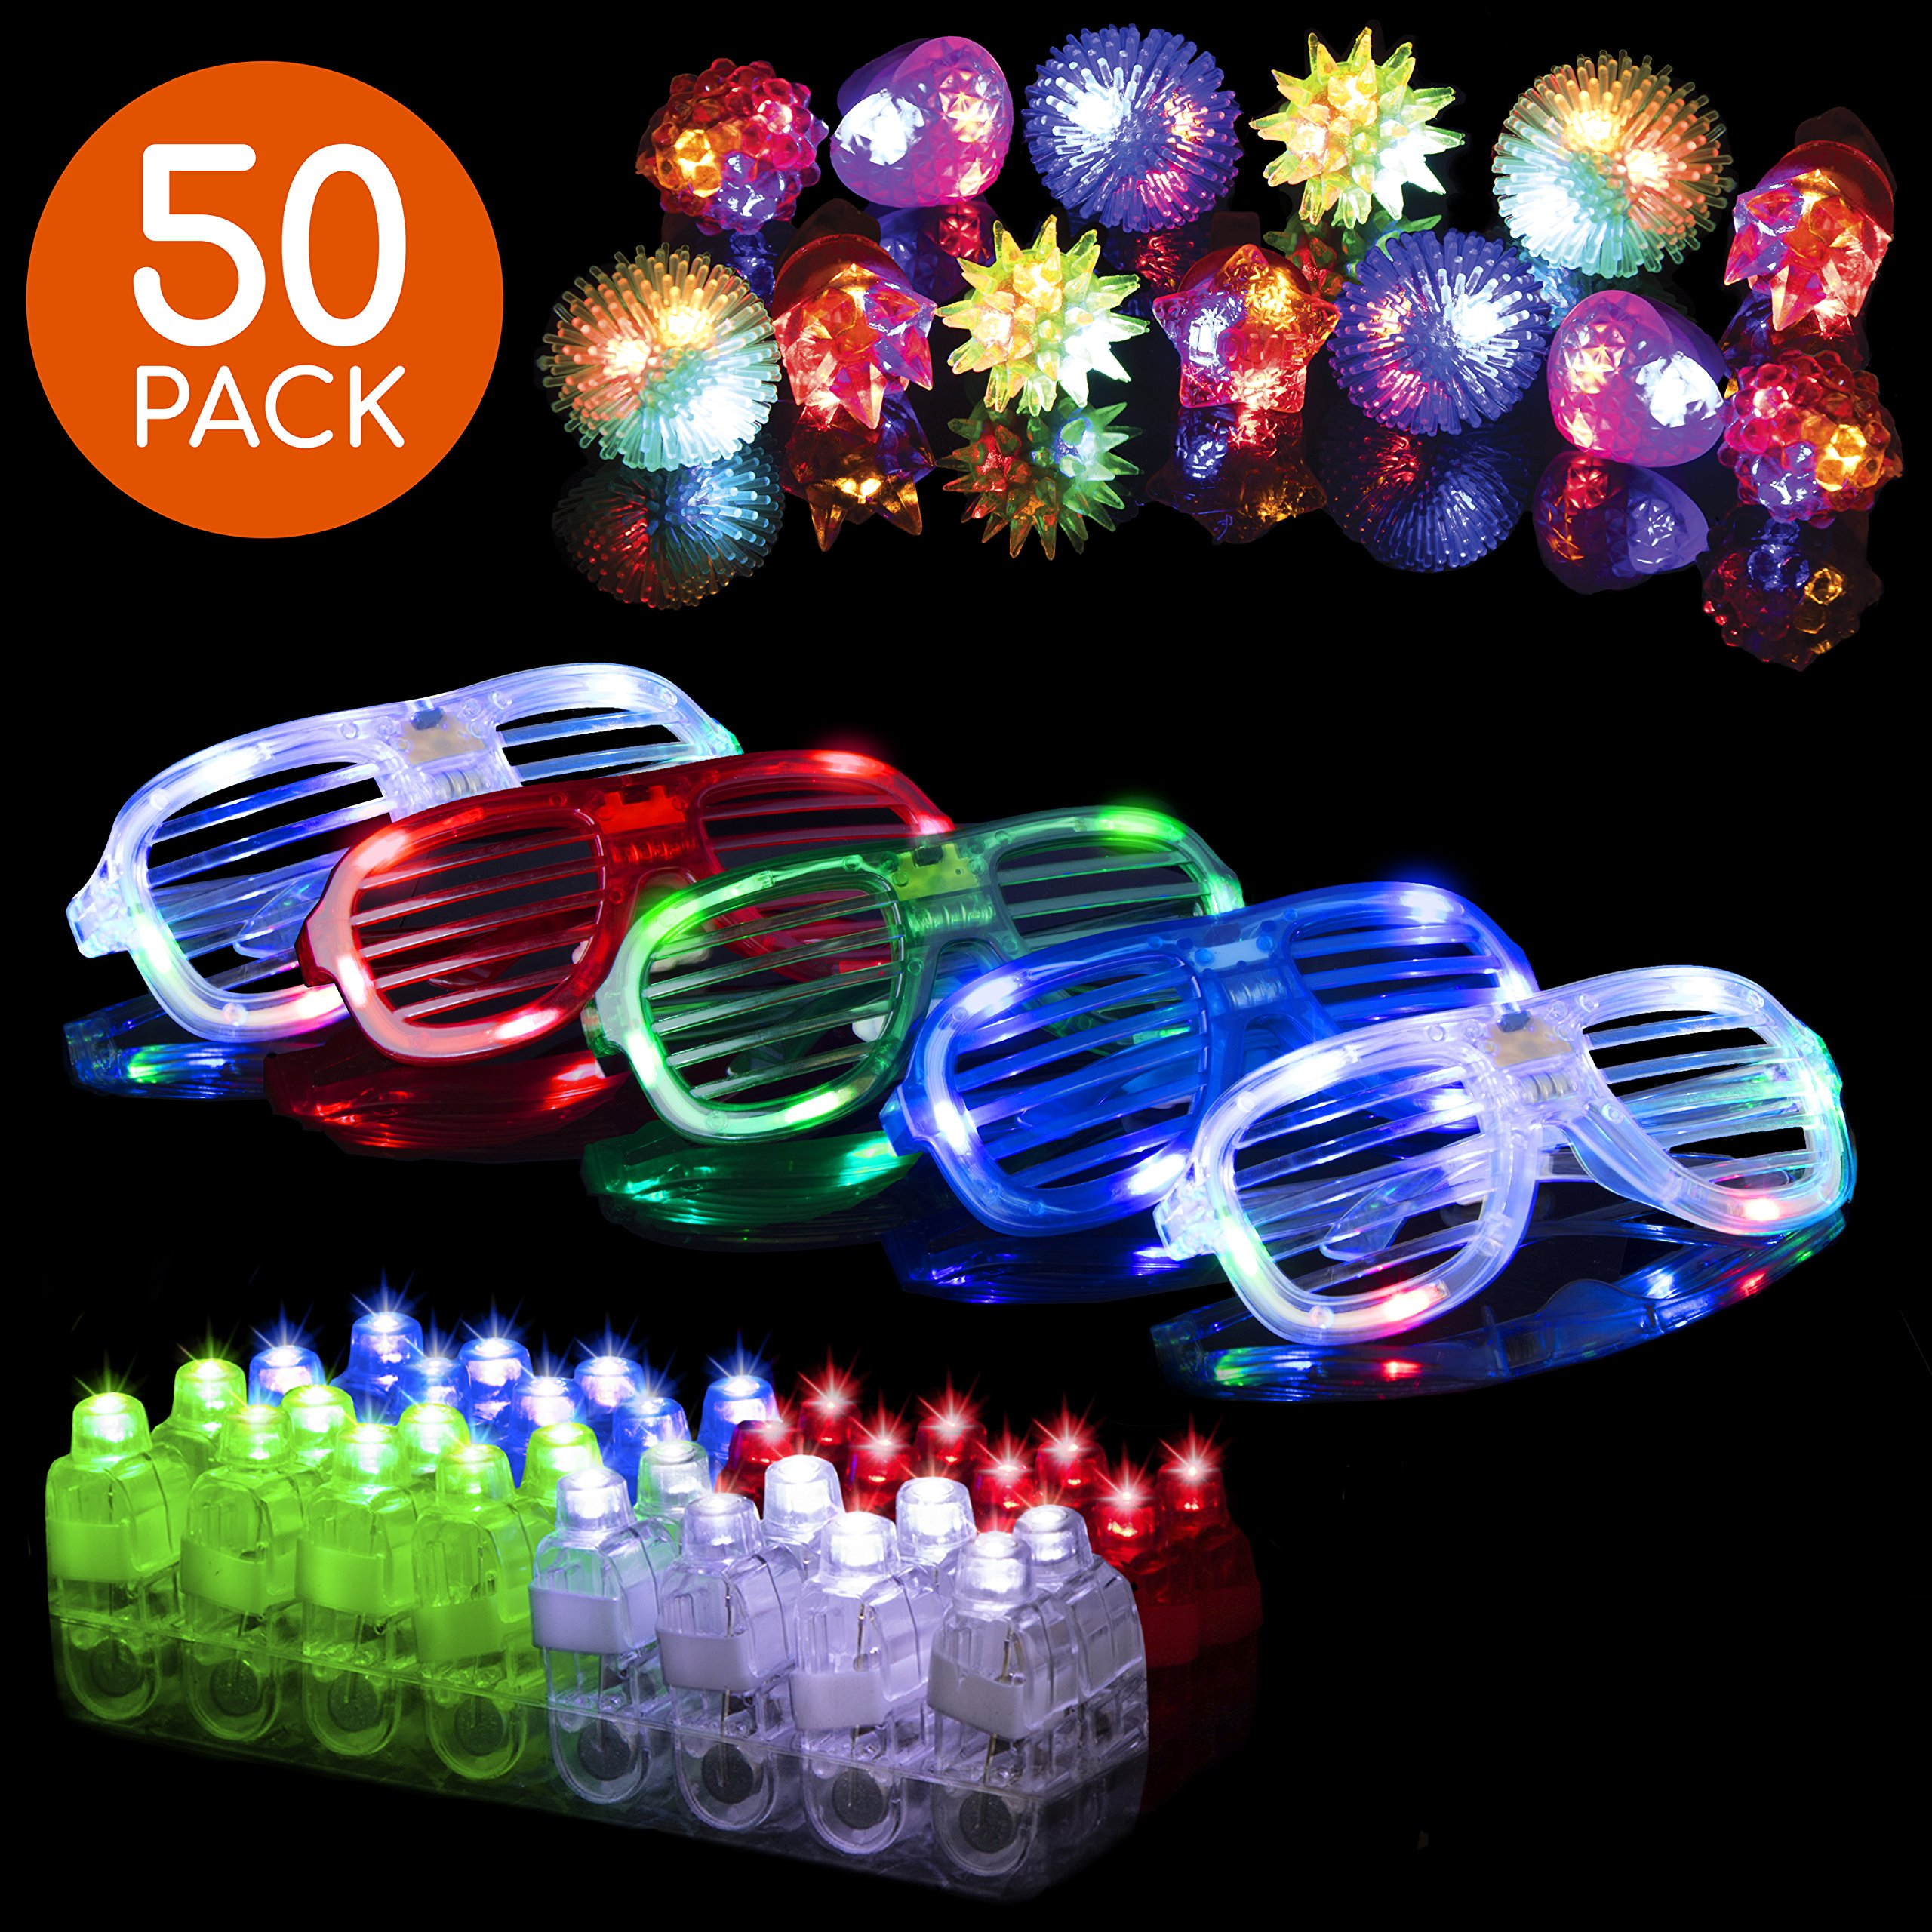 LED Glow Party Favors Party Supplies - 50 LED Glow Party Favor for Kids Glow in The Dark Party Supplies 32 Finger Light Up Toys + 13 Glow Rings + 5 Shades by PartySticks (Image #1)